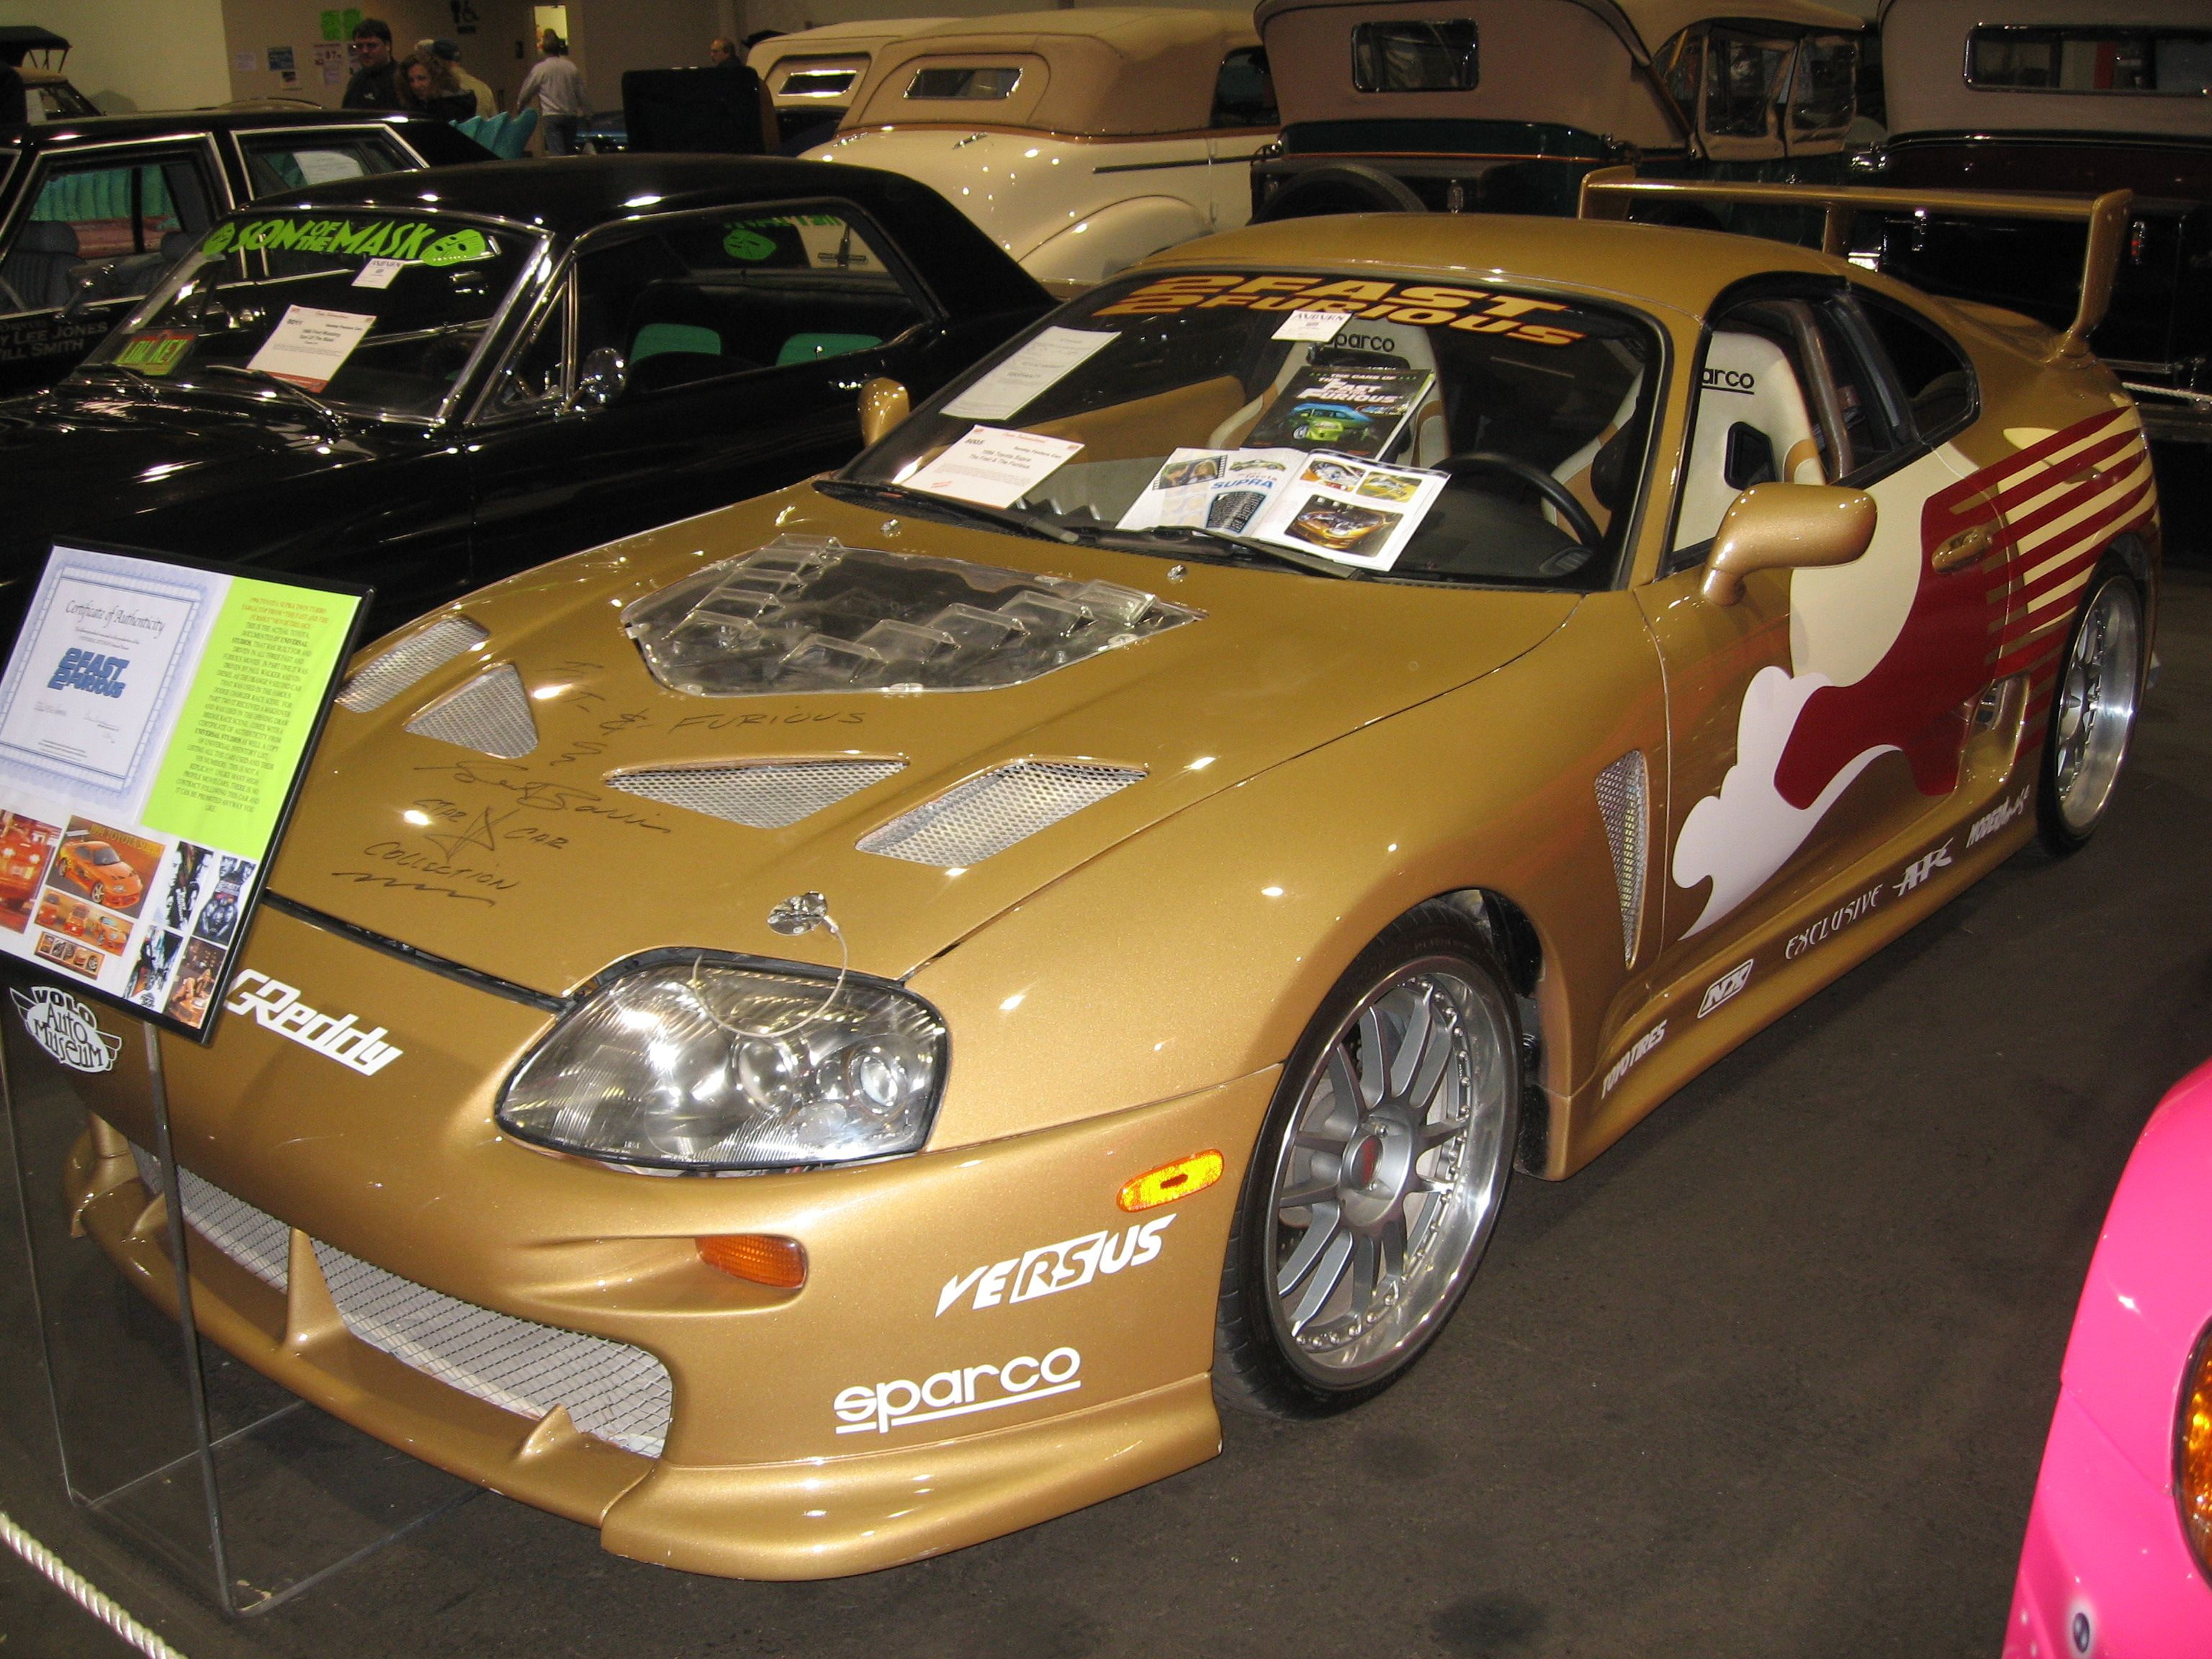 Toyota Supra Turbo MkIV From Fast Furious Toyota - 2 fast 2 furious cars